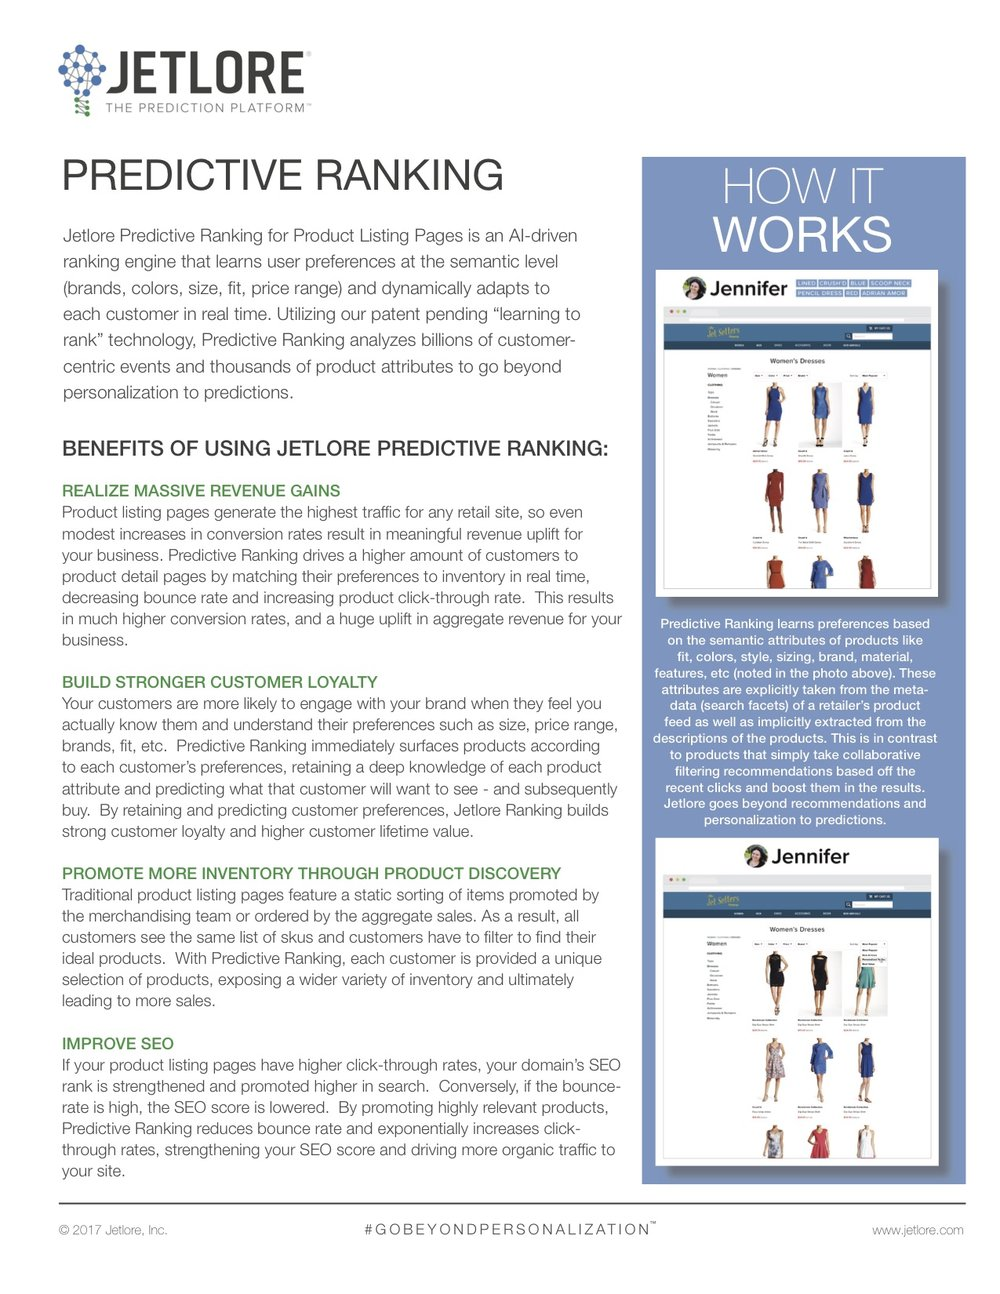 Jetlore's predictive ranking uses Artificial Intelligence to rank and surface all e-commerce products for each customer in real time in the highest traffic pages.